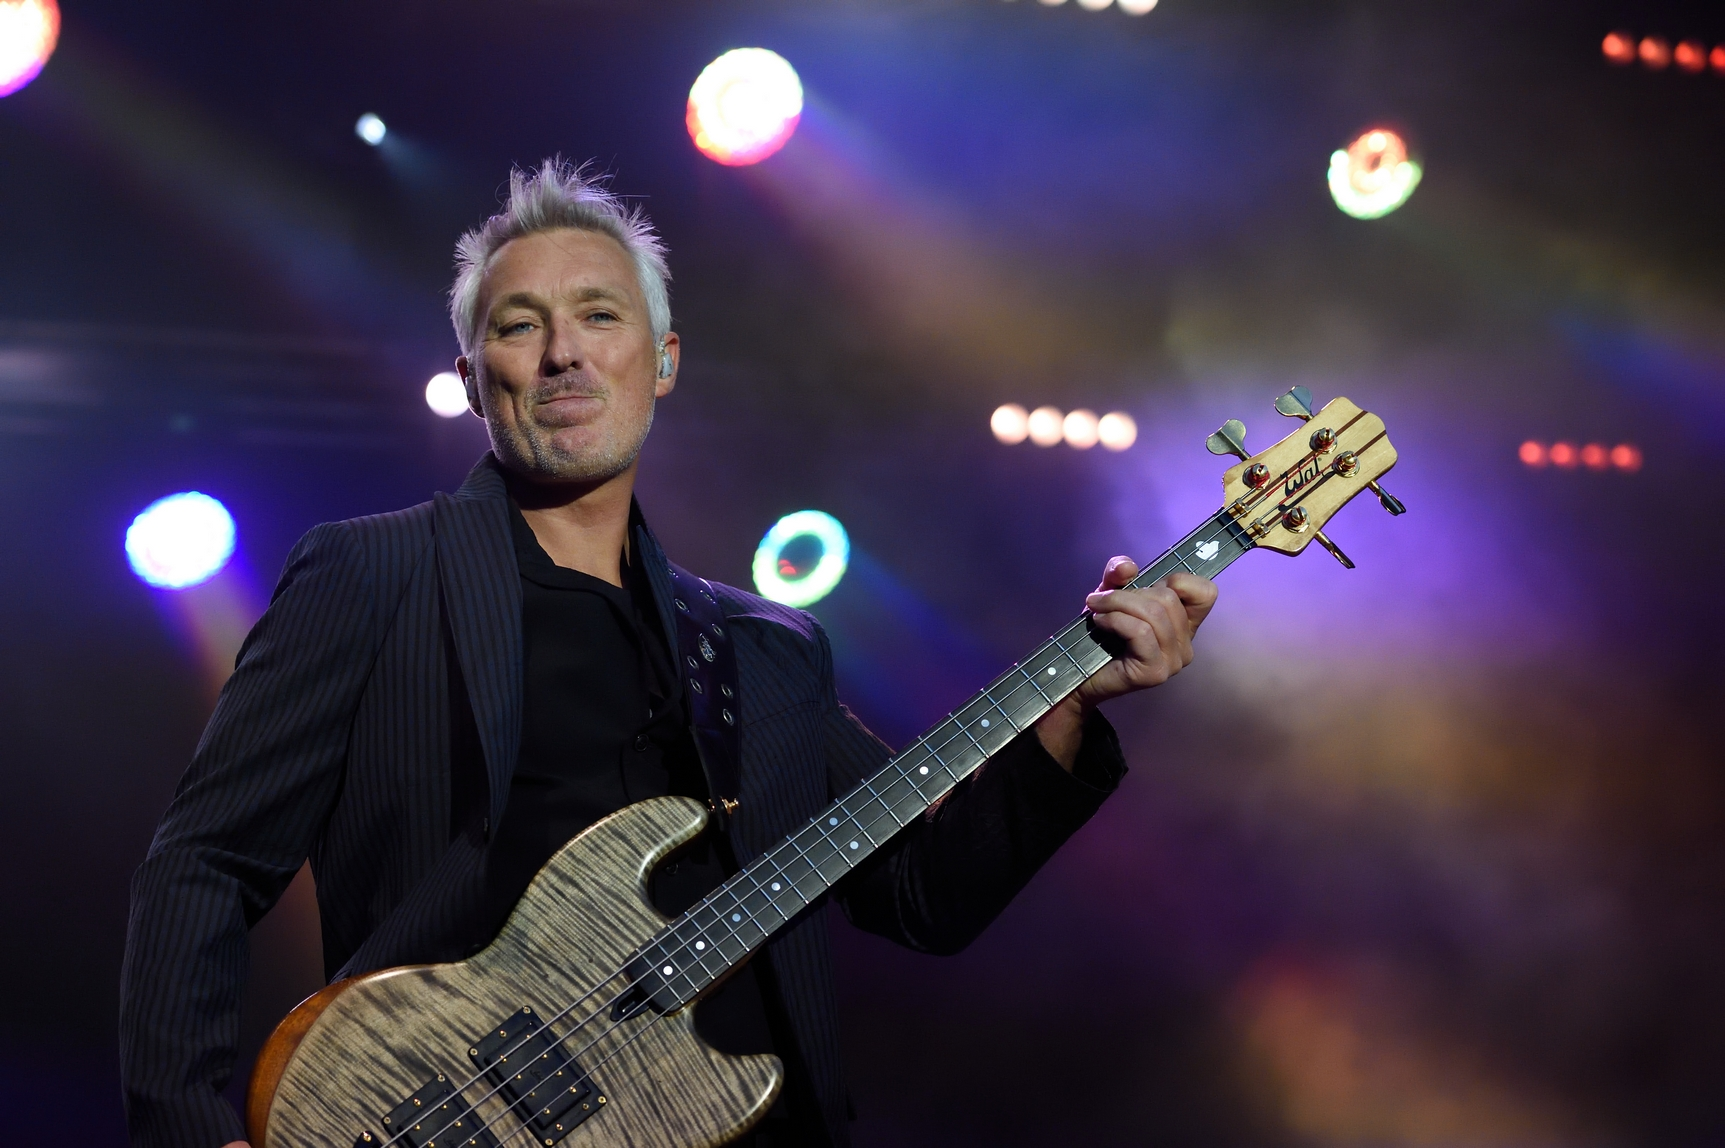 Martin Kemp at Westonbirt Arboretum. Picture by Peter Dewhirst